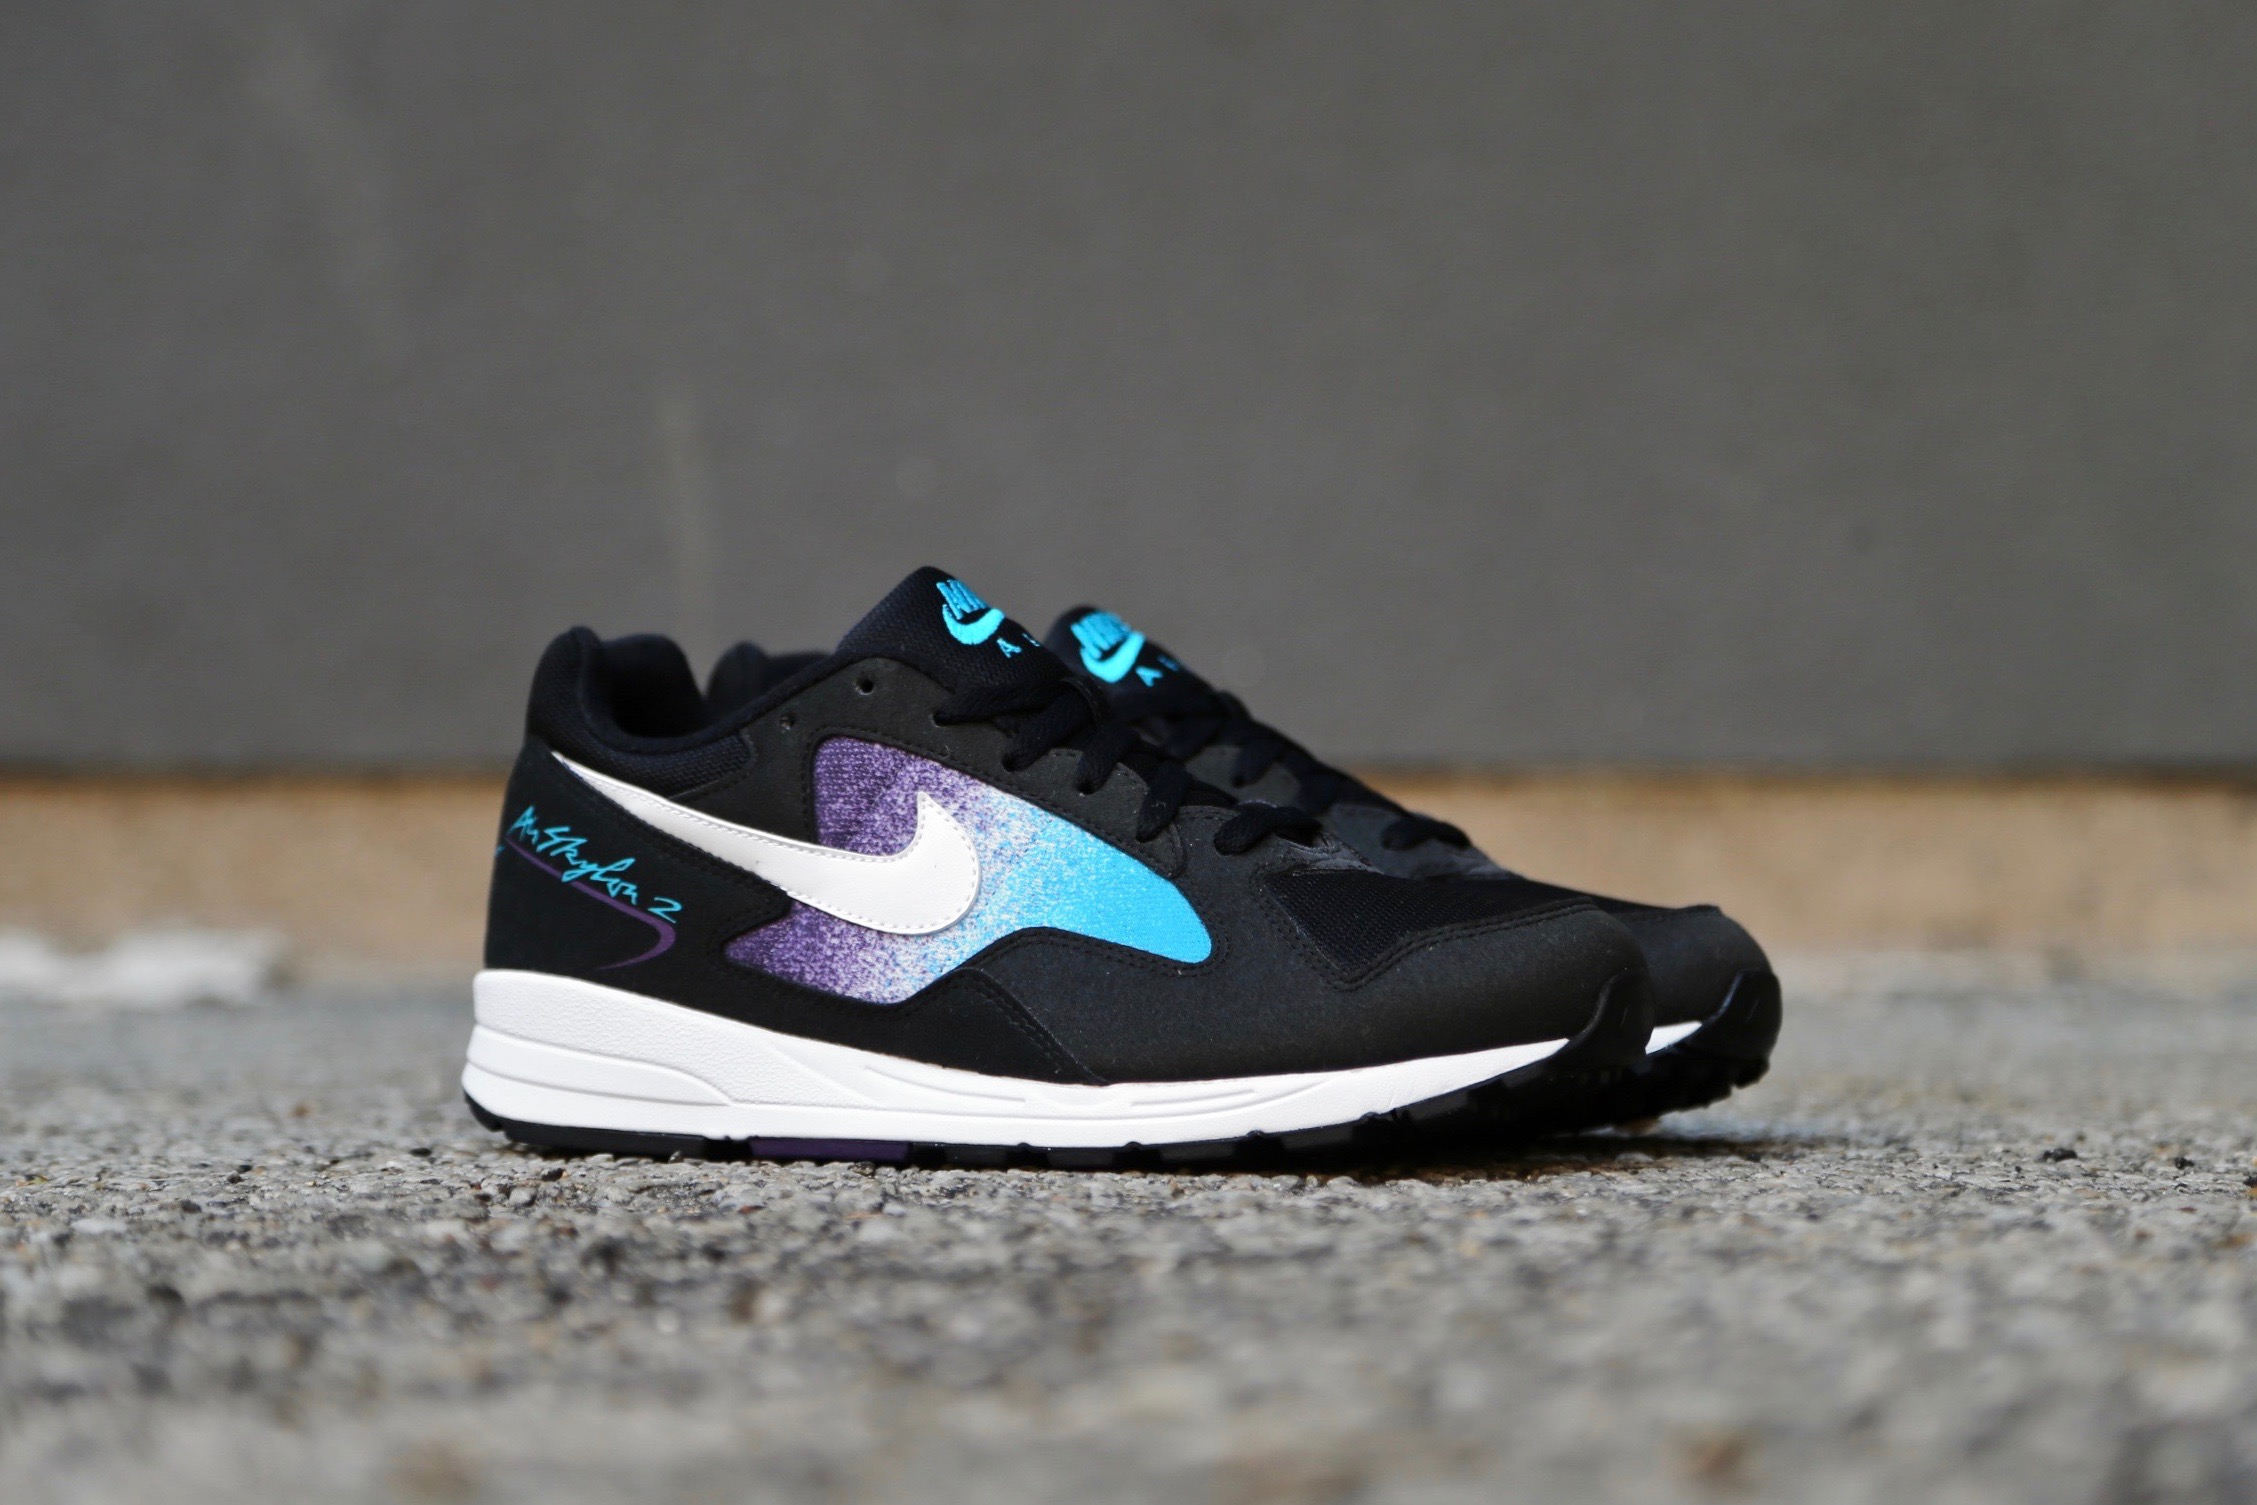 Nike Air Skylon II Black Blue Lagoon Grand Purple White